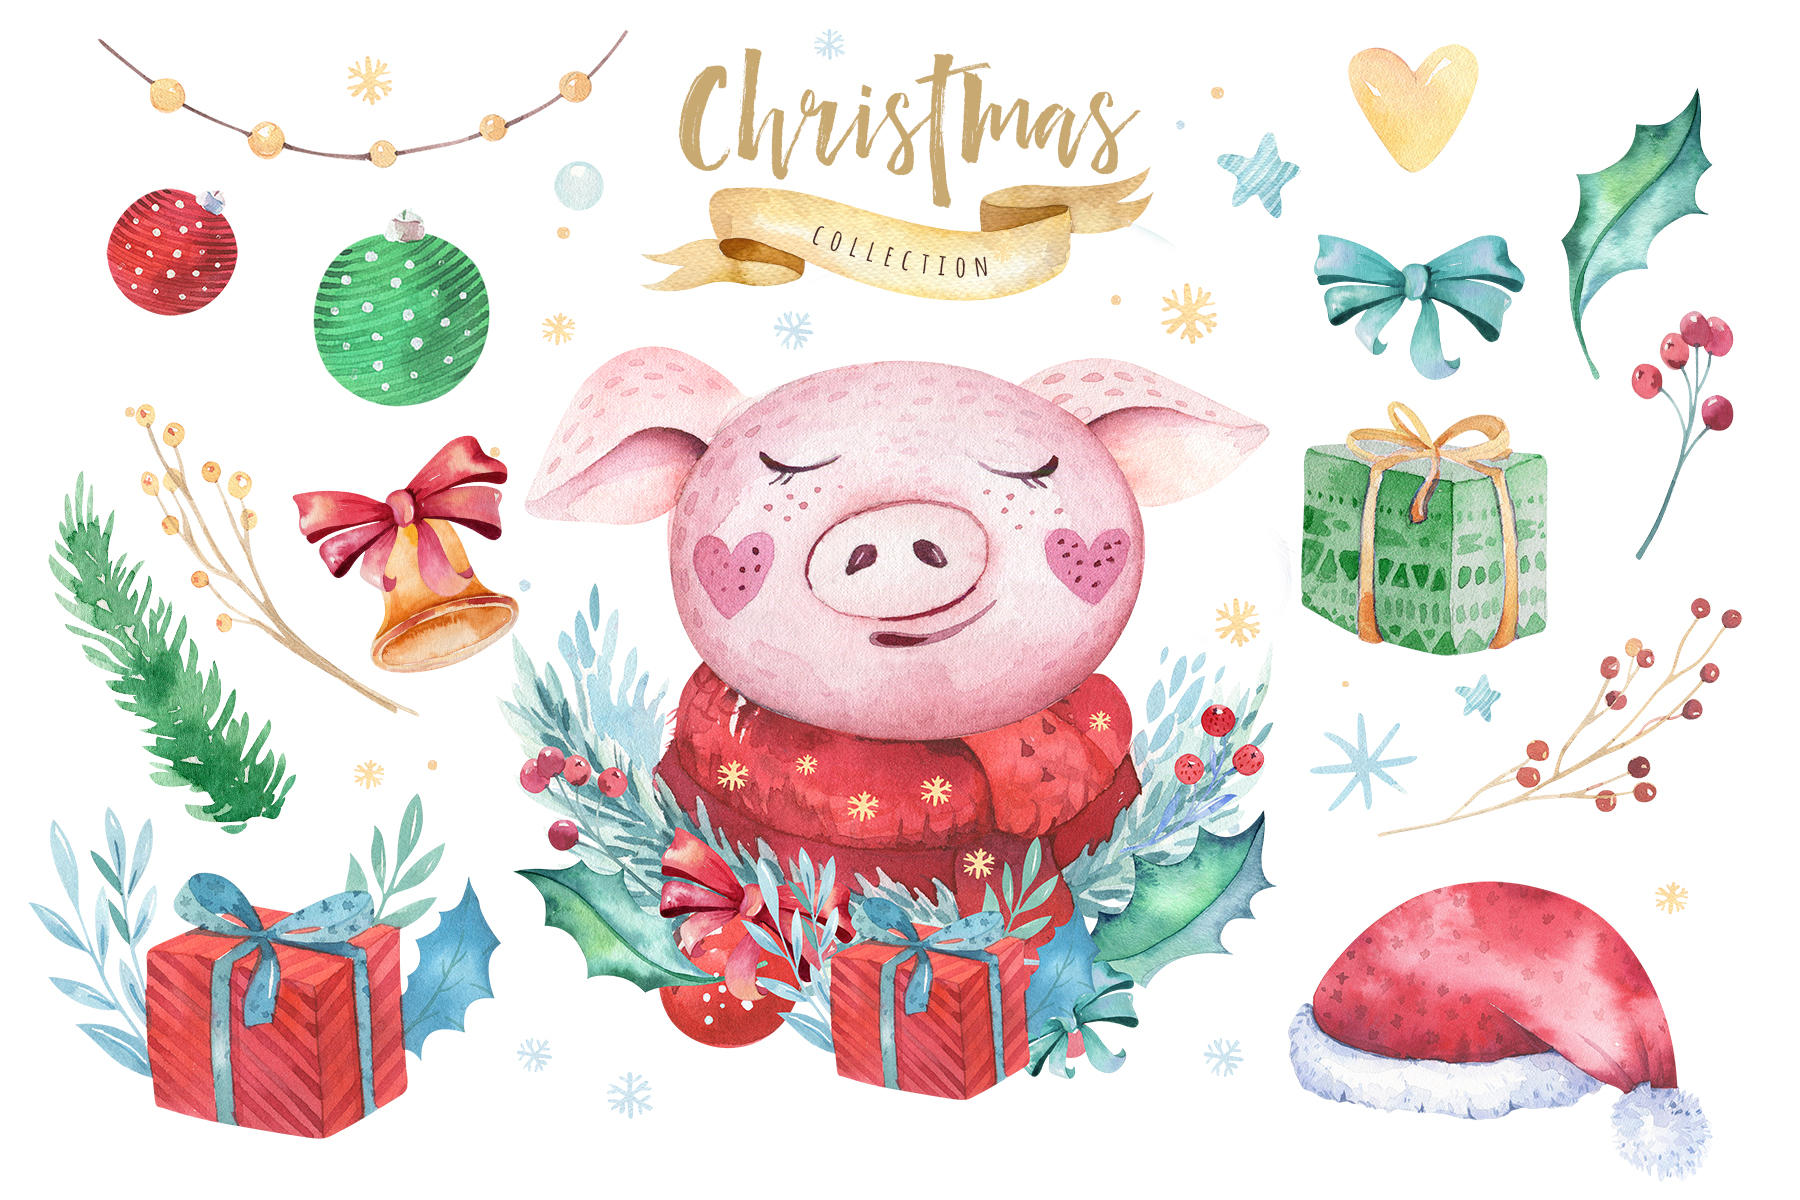 Oink! 2019... This is my year! example image 3